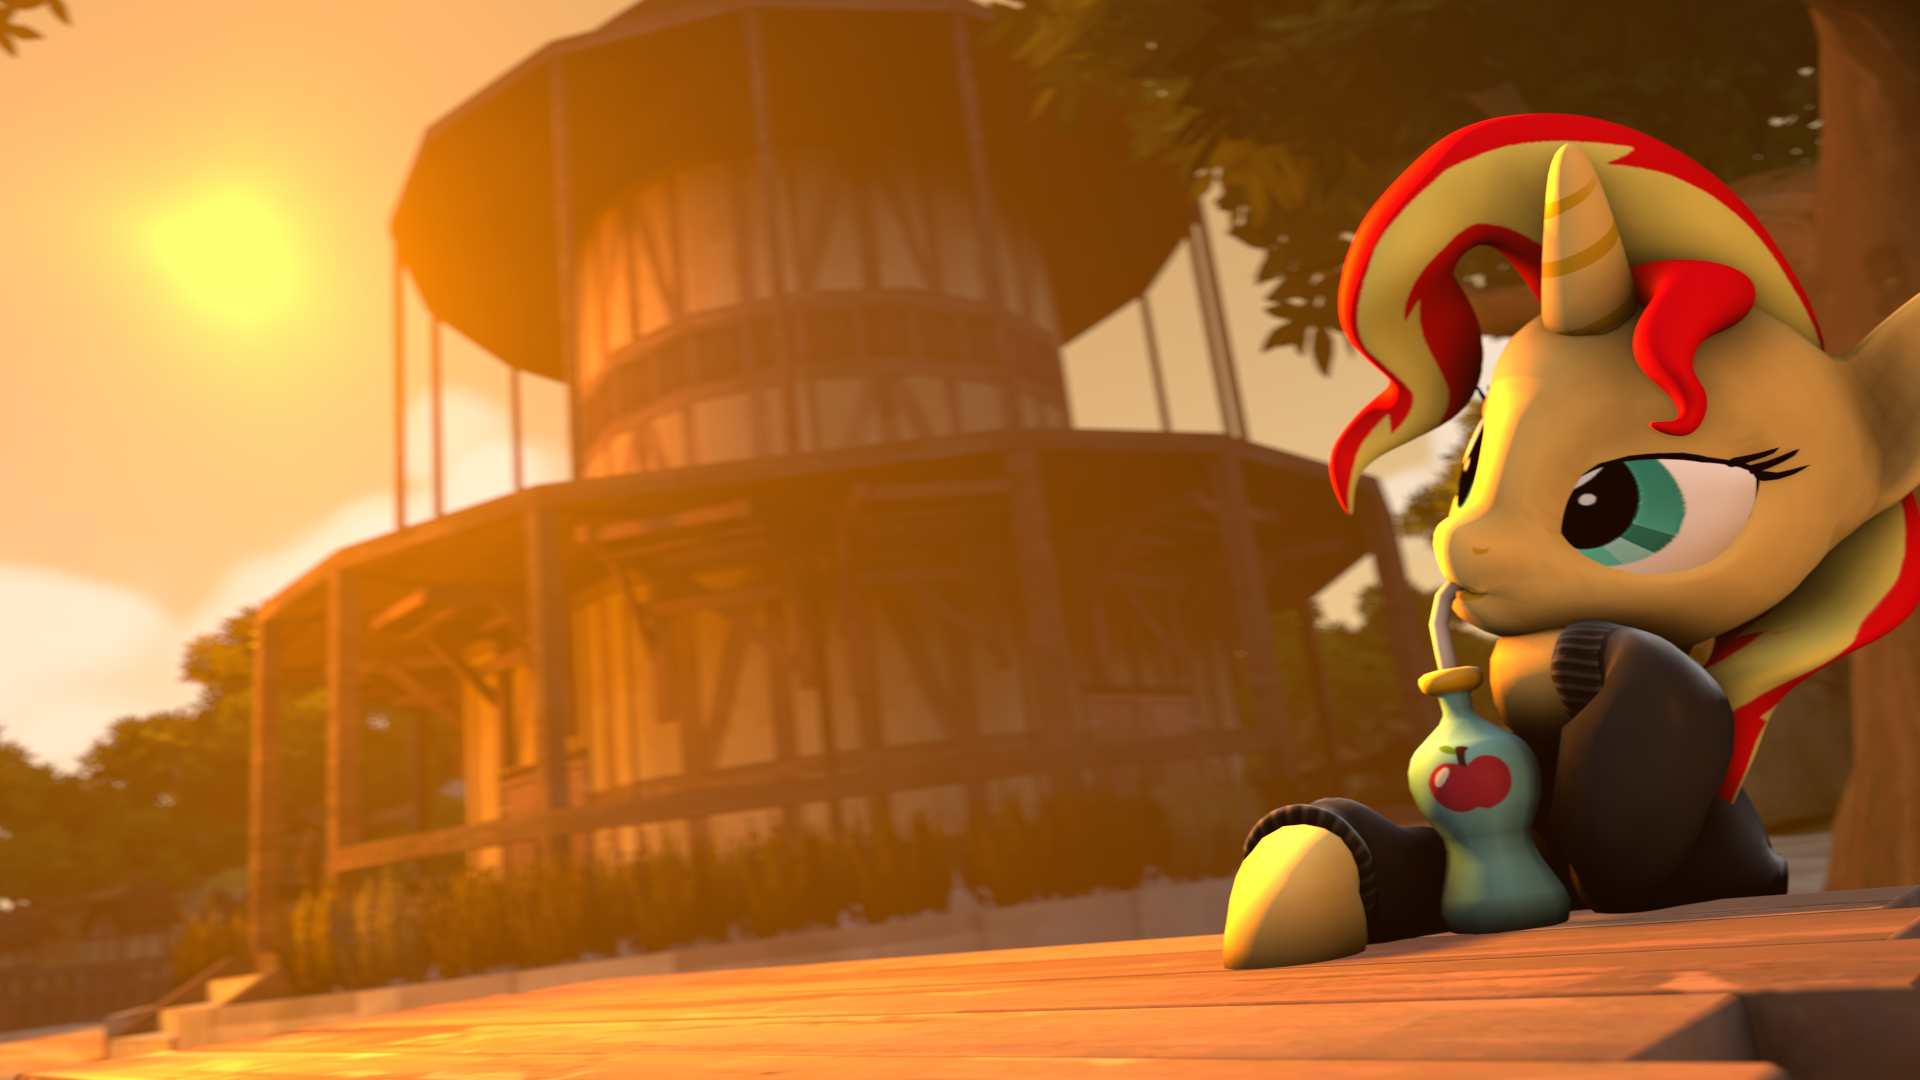 _sfm__drinking_some_juice_in_the_sunset_